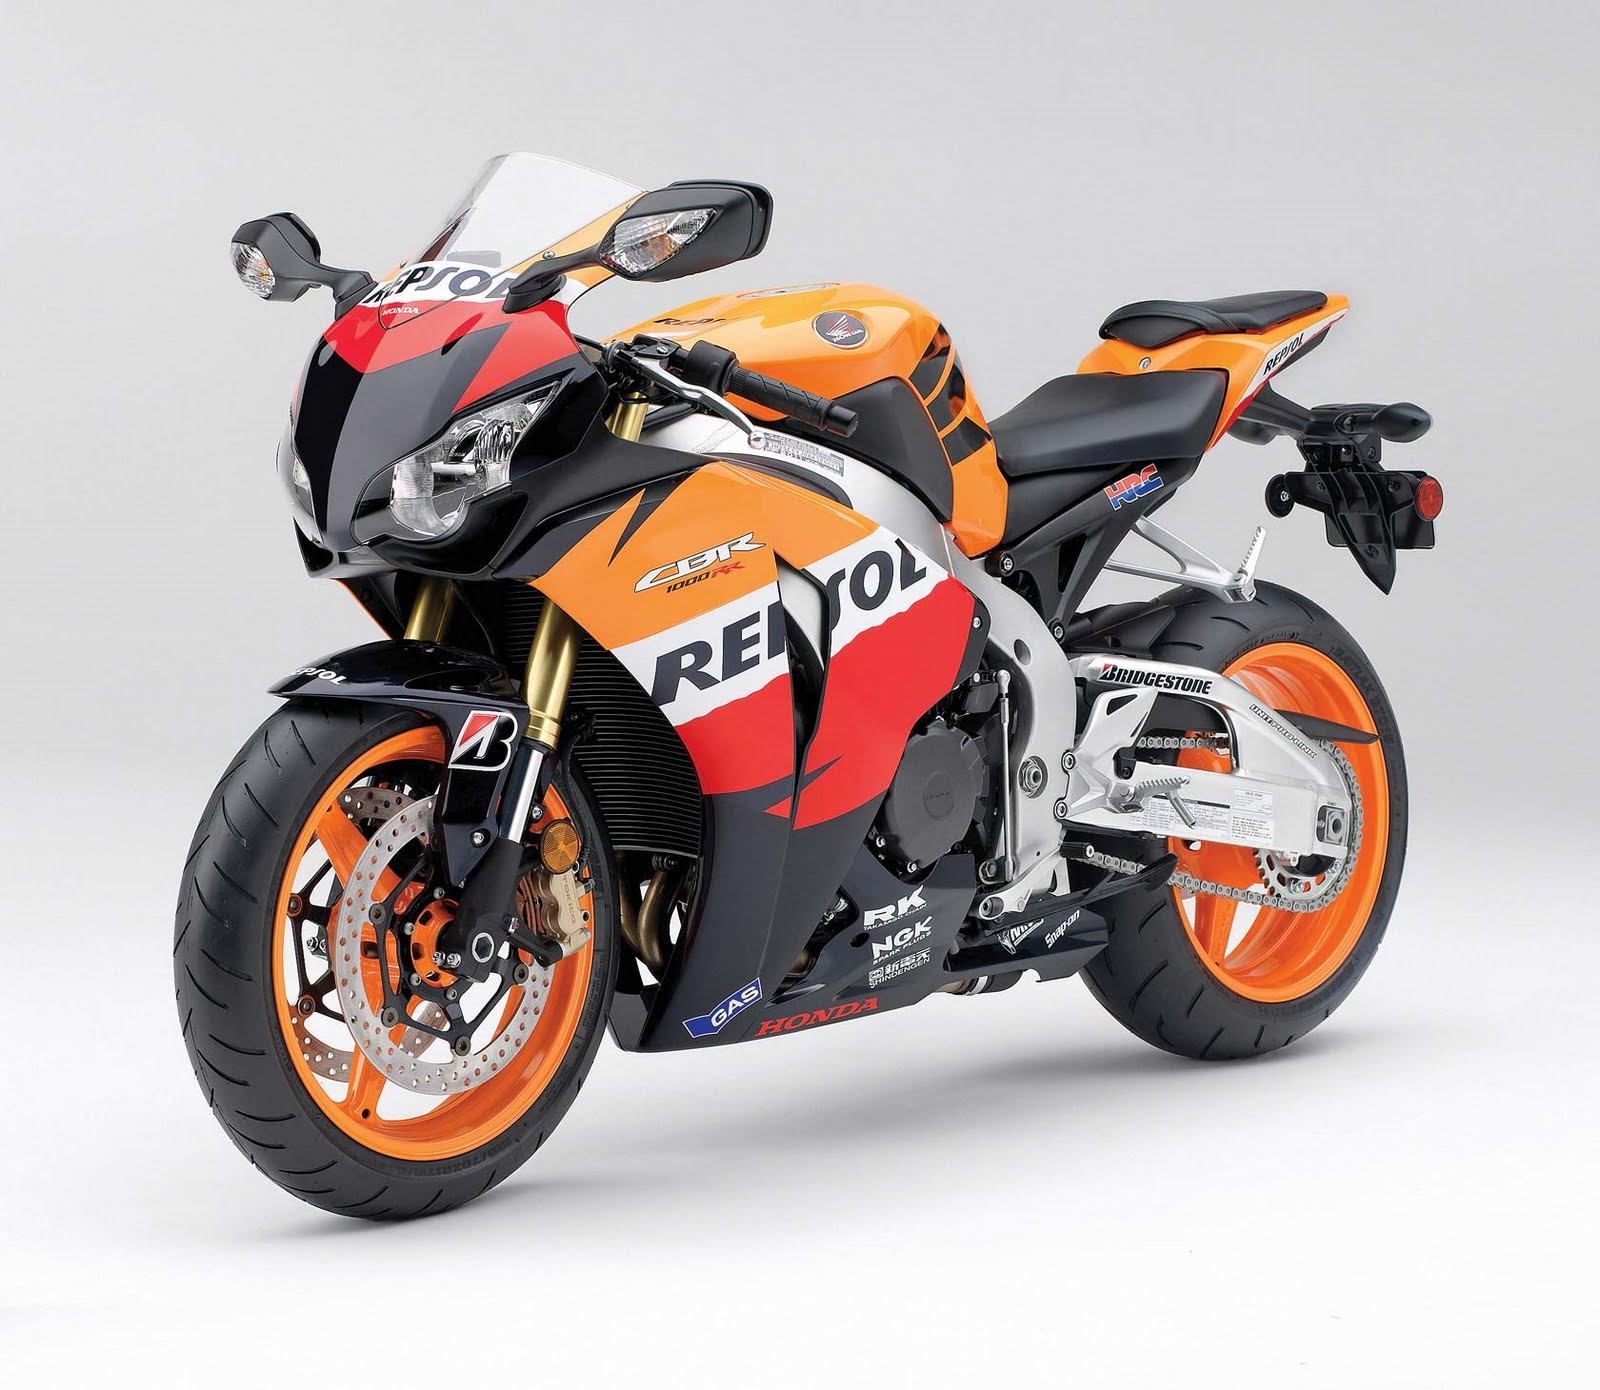 2014 Cbr 1000rr Motorcycle Template